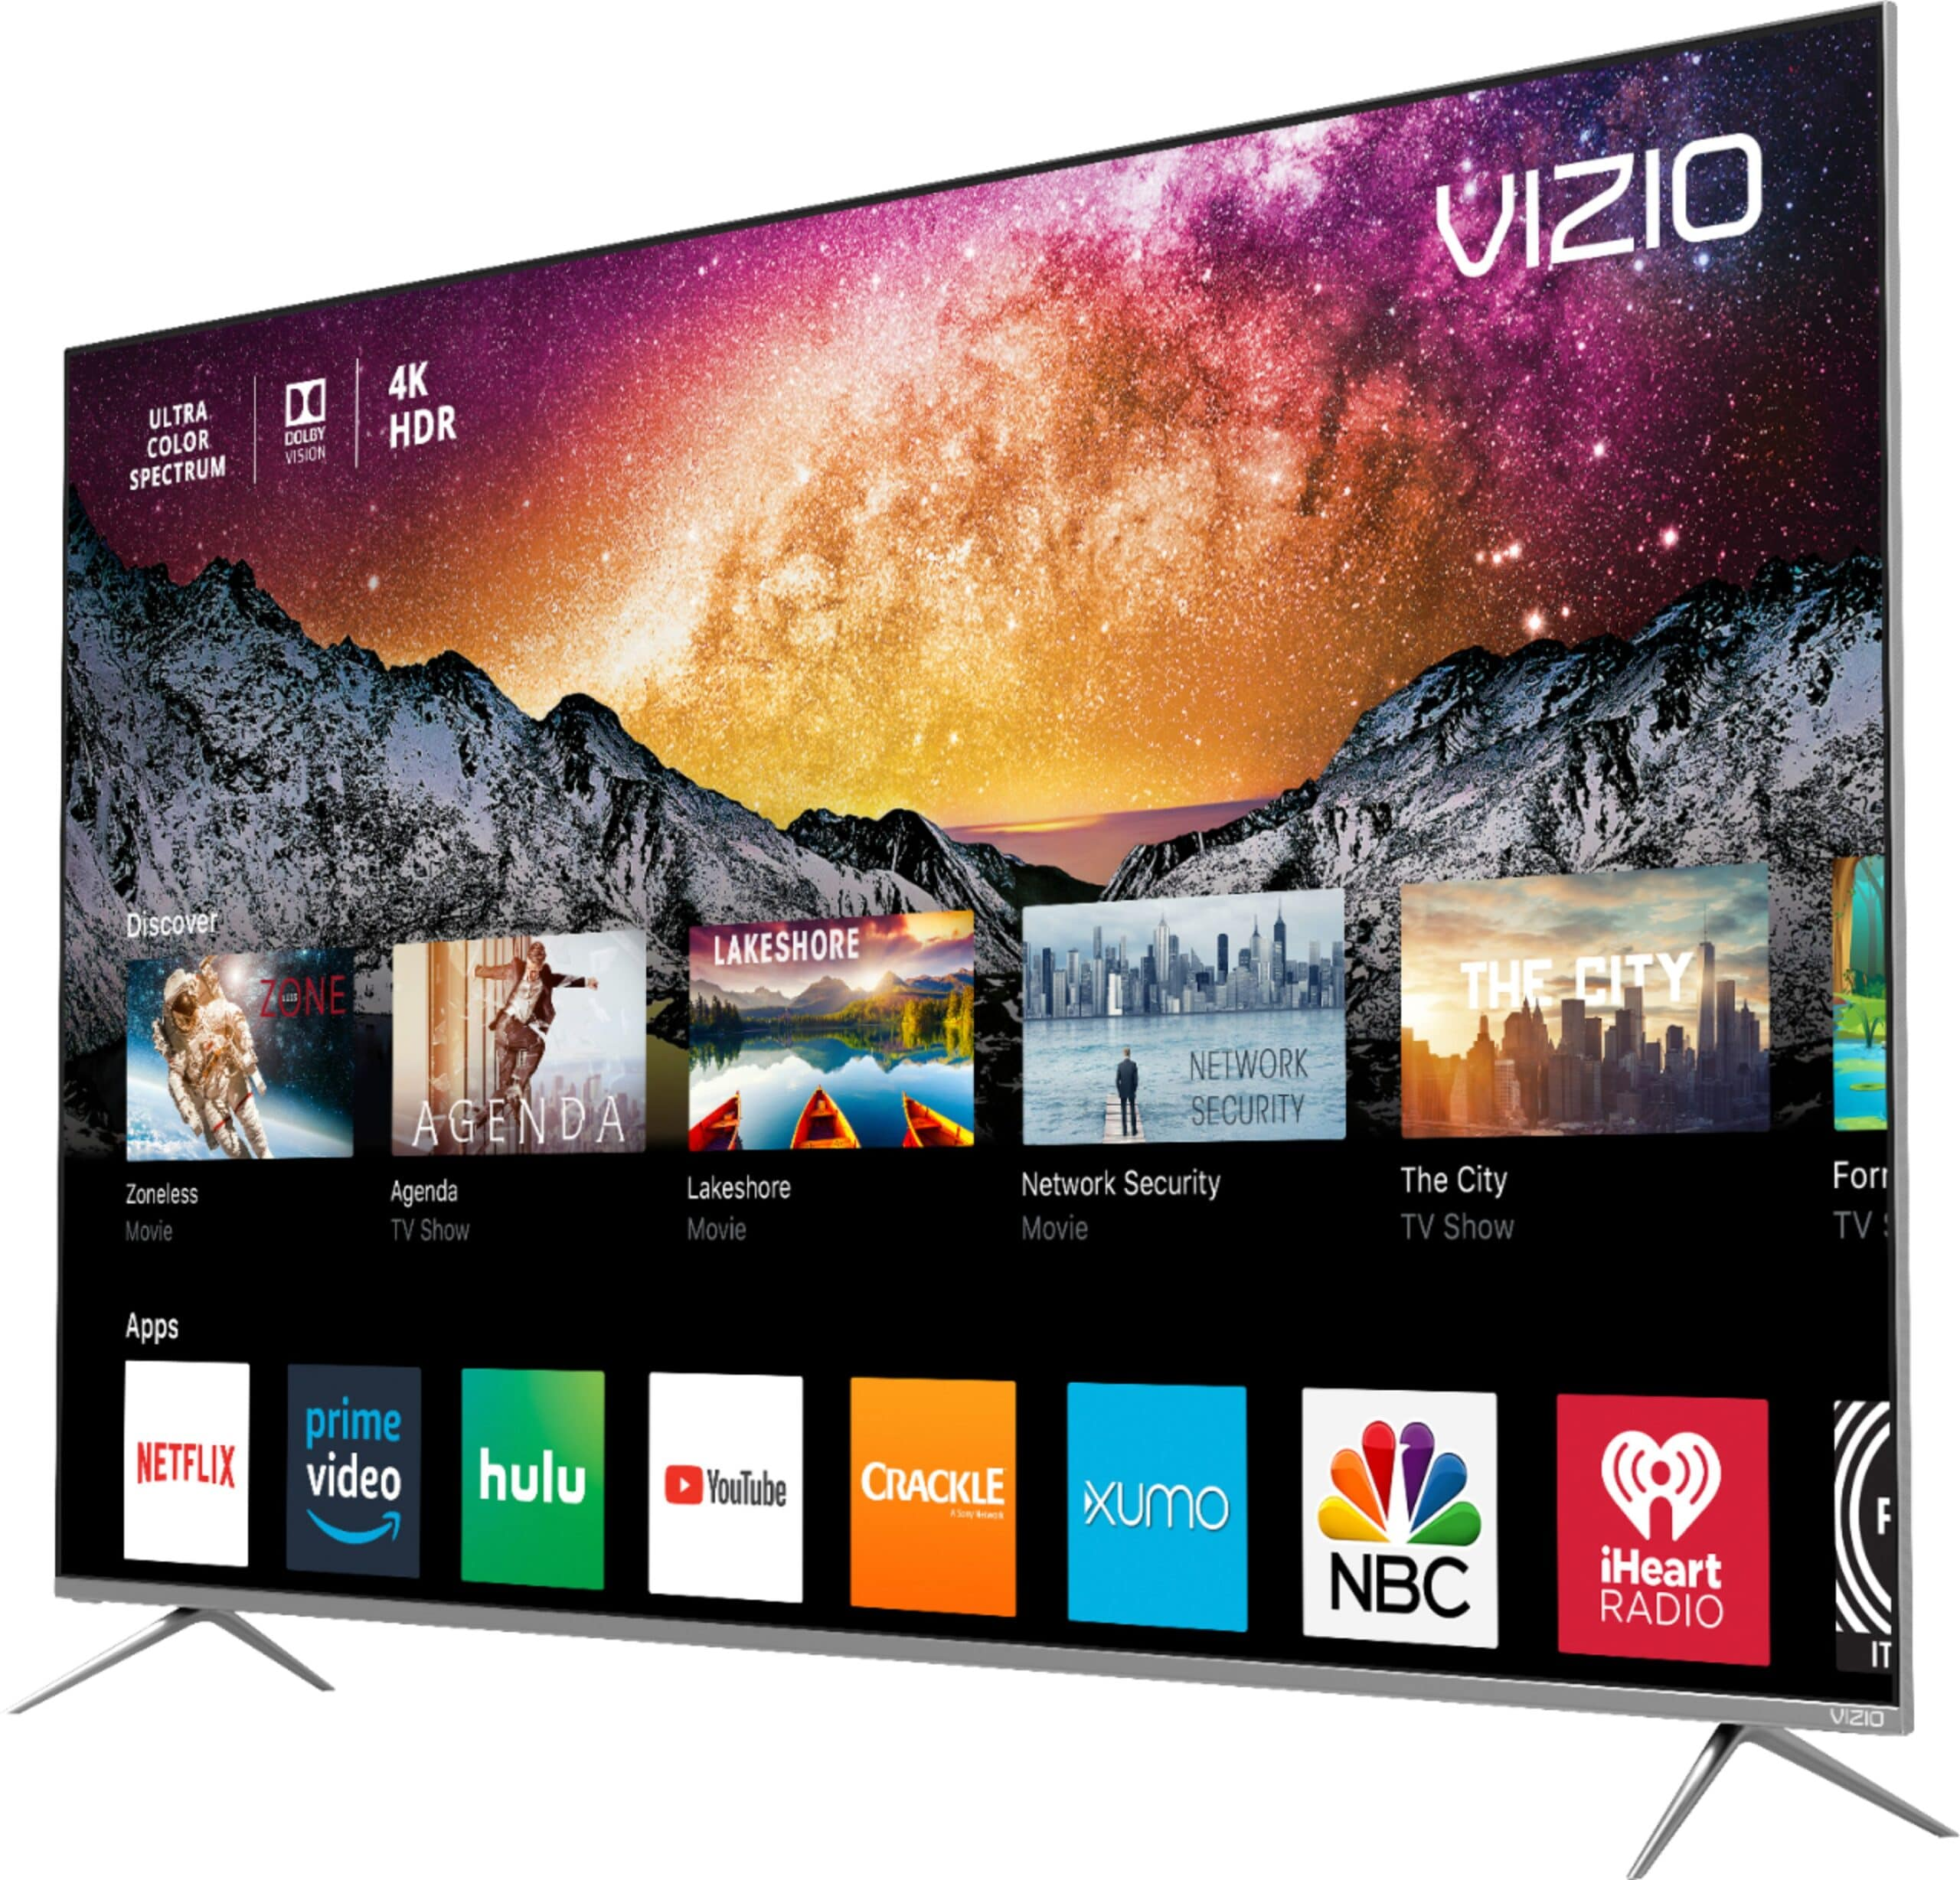 VIZIO P Series 55 Inch 4K HDR Smart TV Smart TV Options. Learn about how every pixel is a masterpiece of vivid color, pristine clarity and precise contrast with the all-new 2018 VIZIO P-Series® 4K HDR Smart TVs.